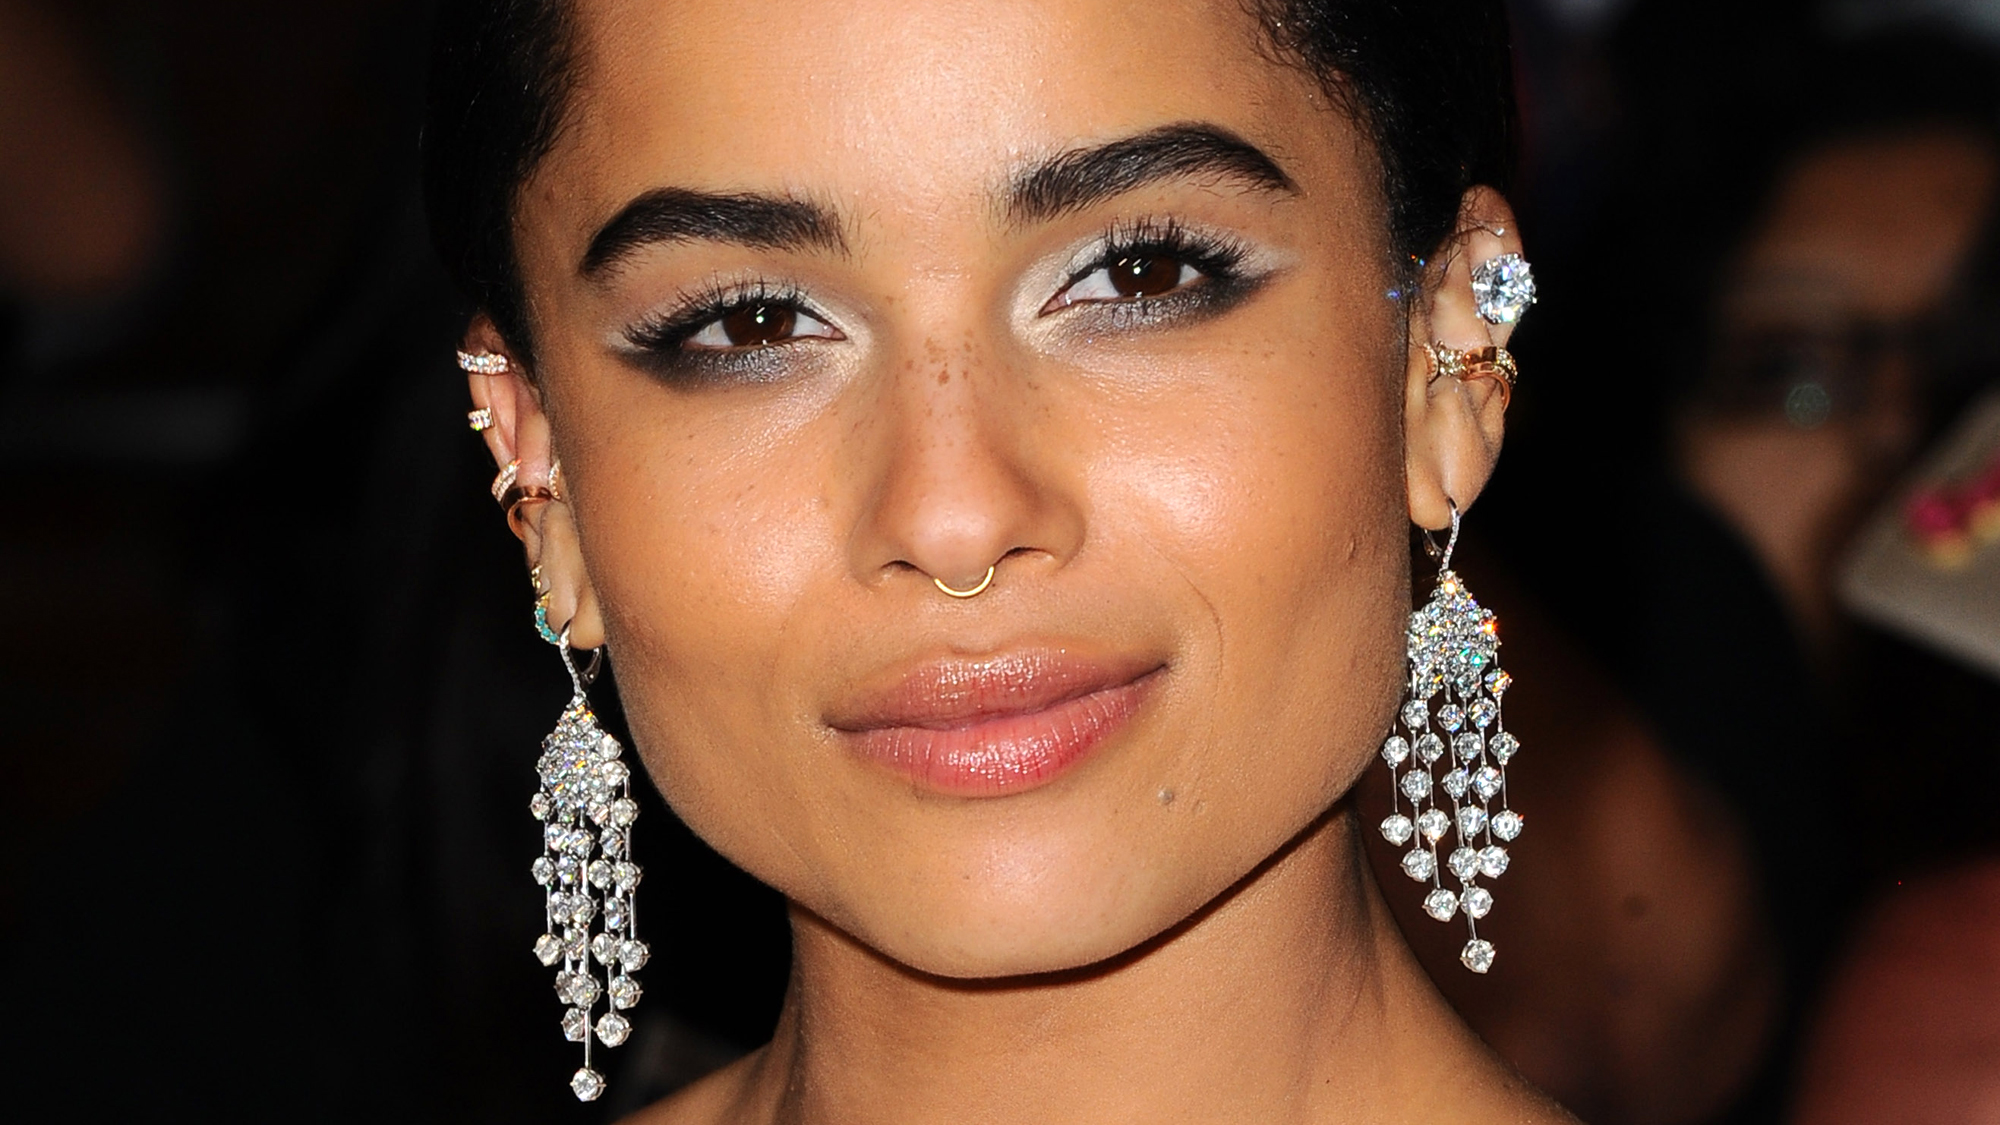 Zoe Kravitz Piercings: The Cool Girl Piercing With A Surprising Health Benefit